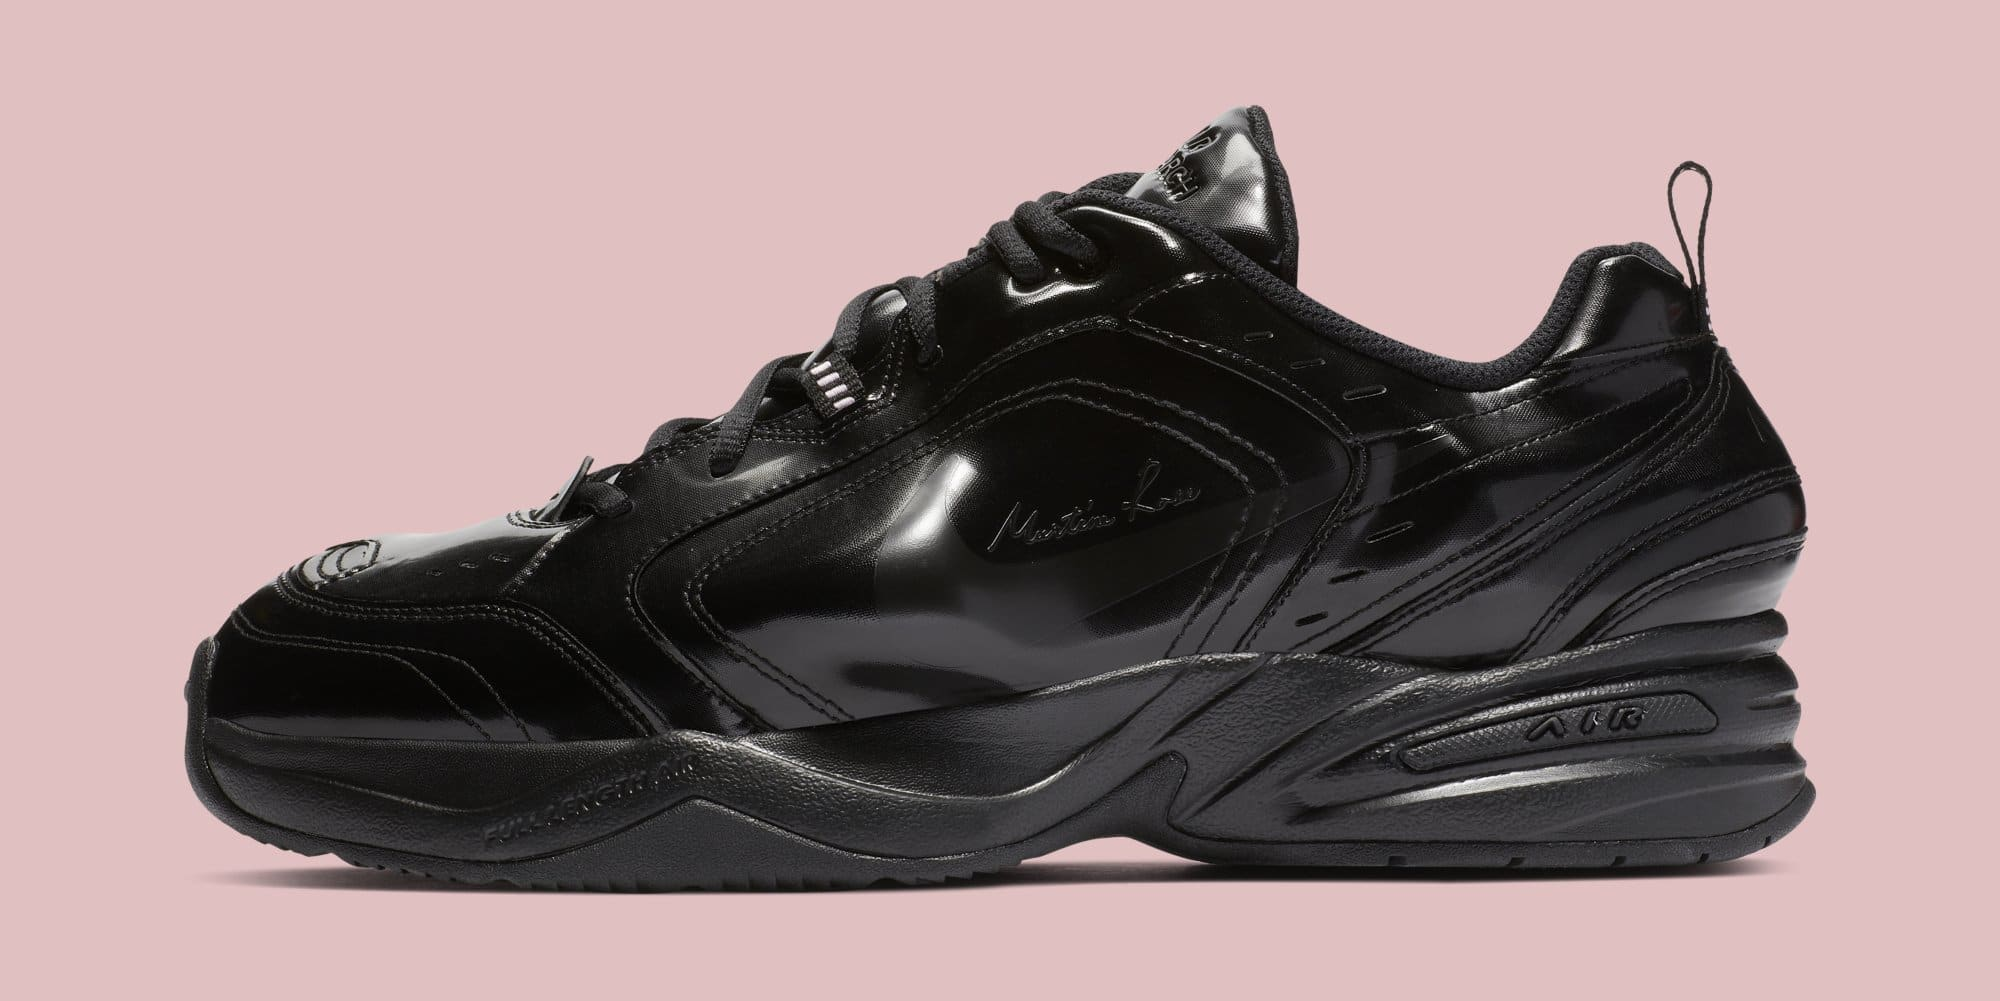 Martine Rose x Nike Air Monarch 4 'Black' AT3147-001 (Lateral)